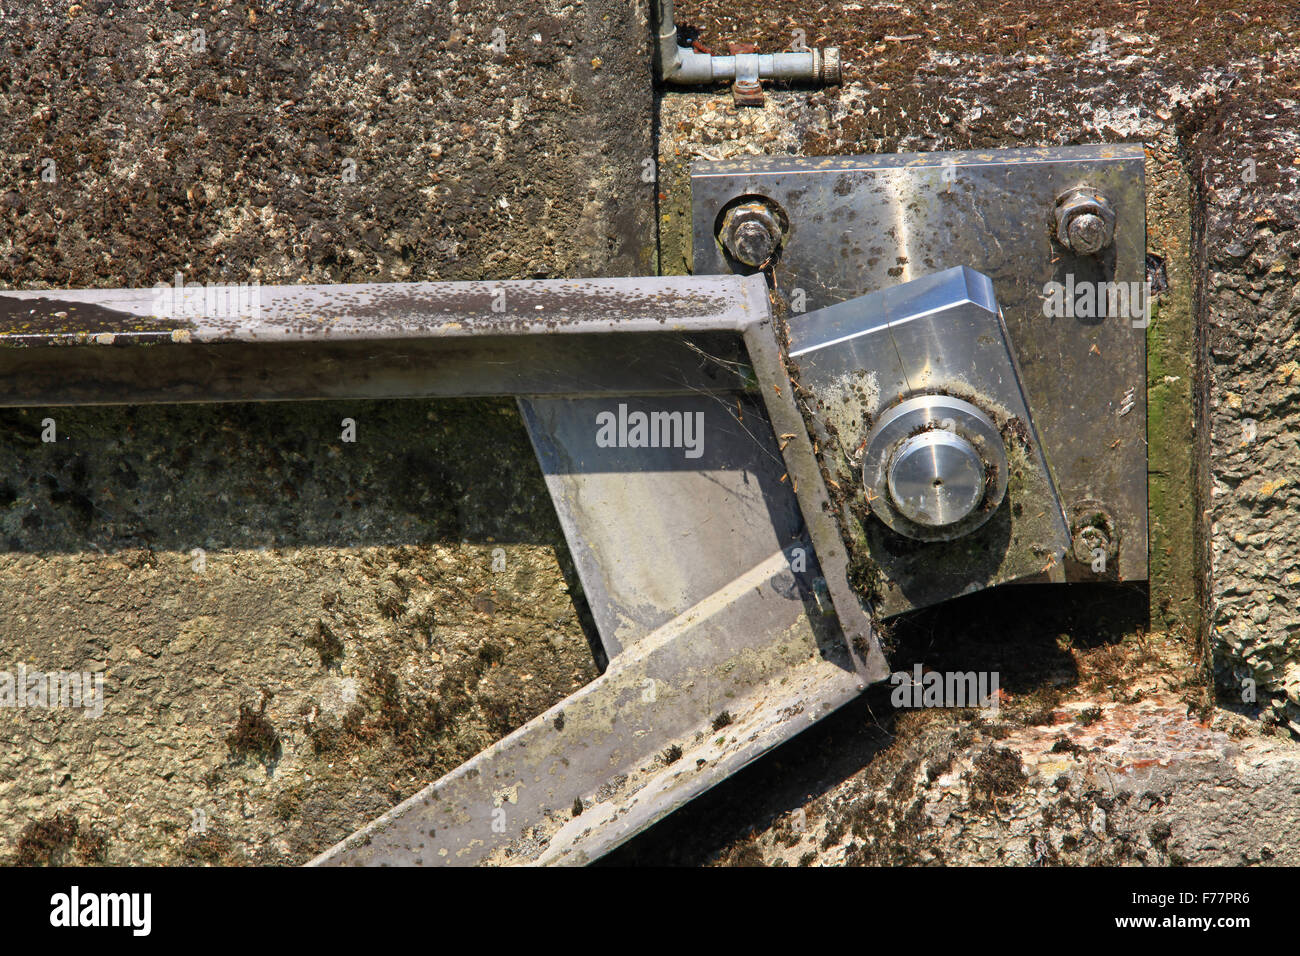 A stainless steel arm pivoting on a hinge pin secured to a concrete wall in an aquatic environment. - Stock Image